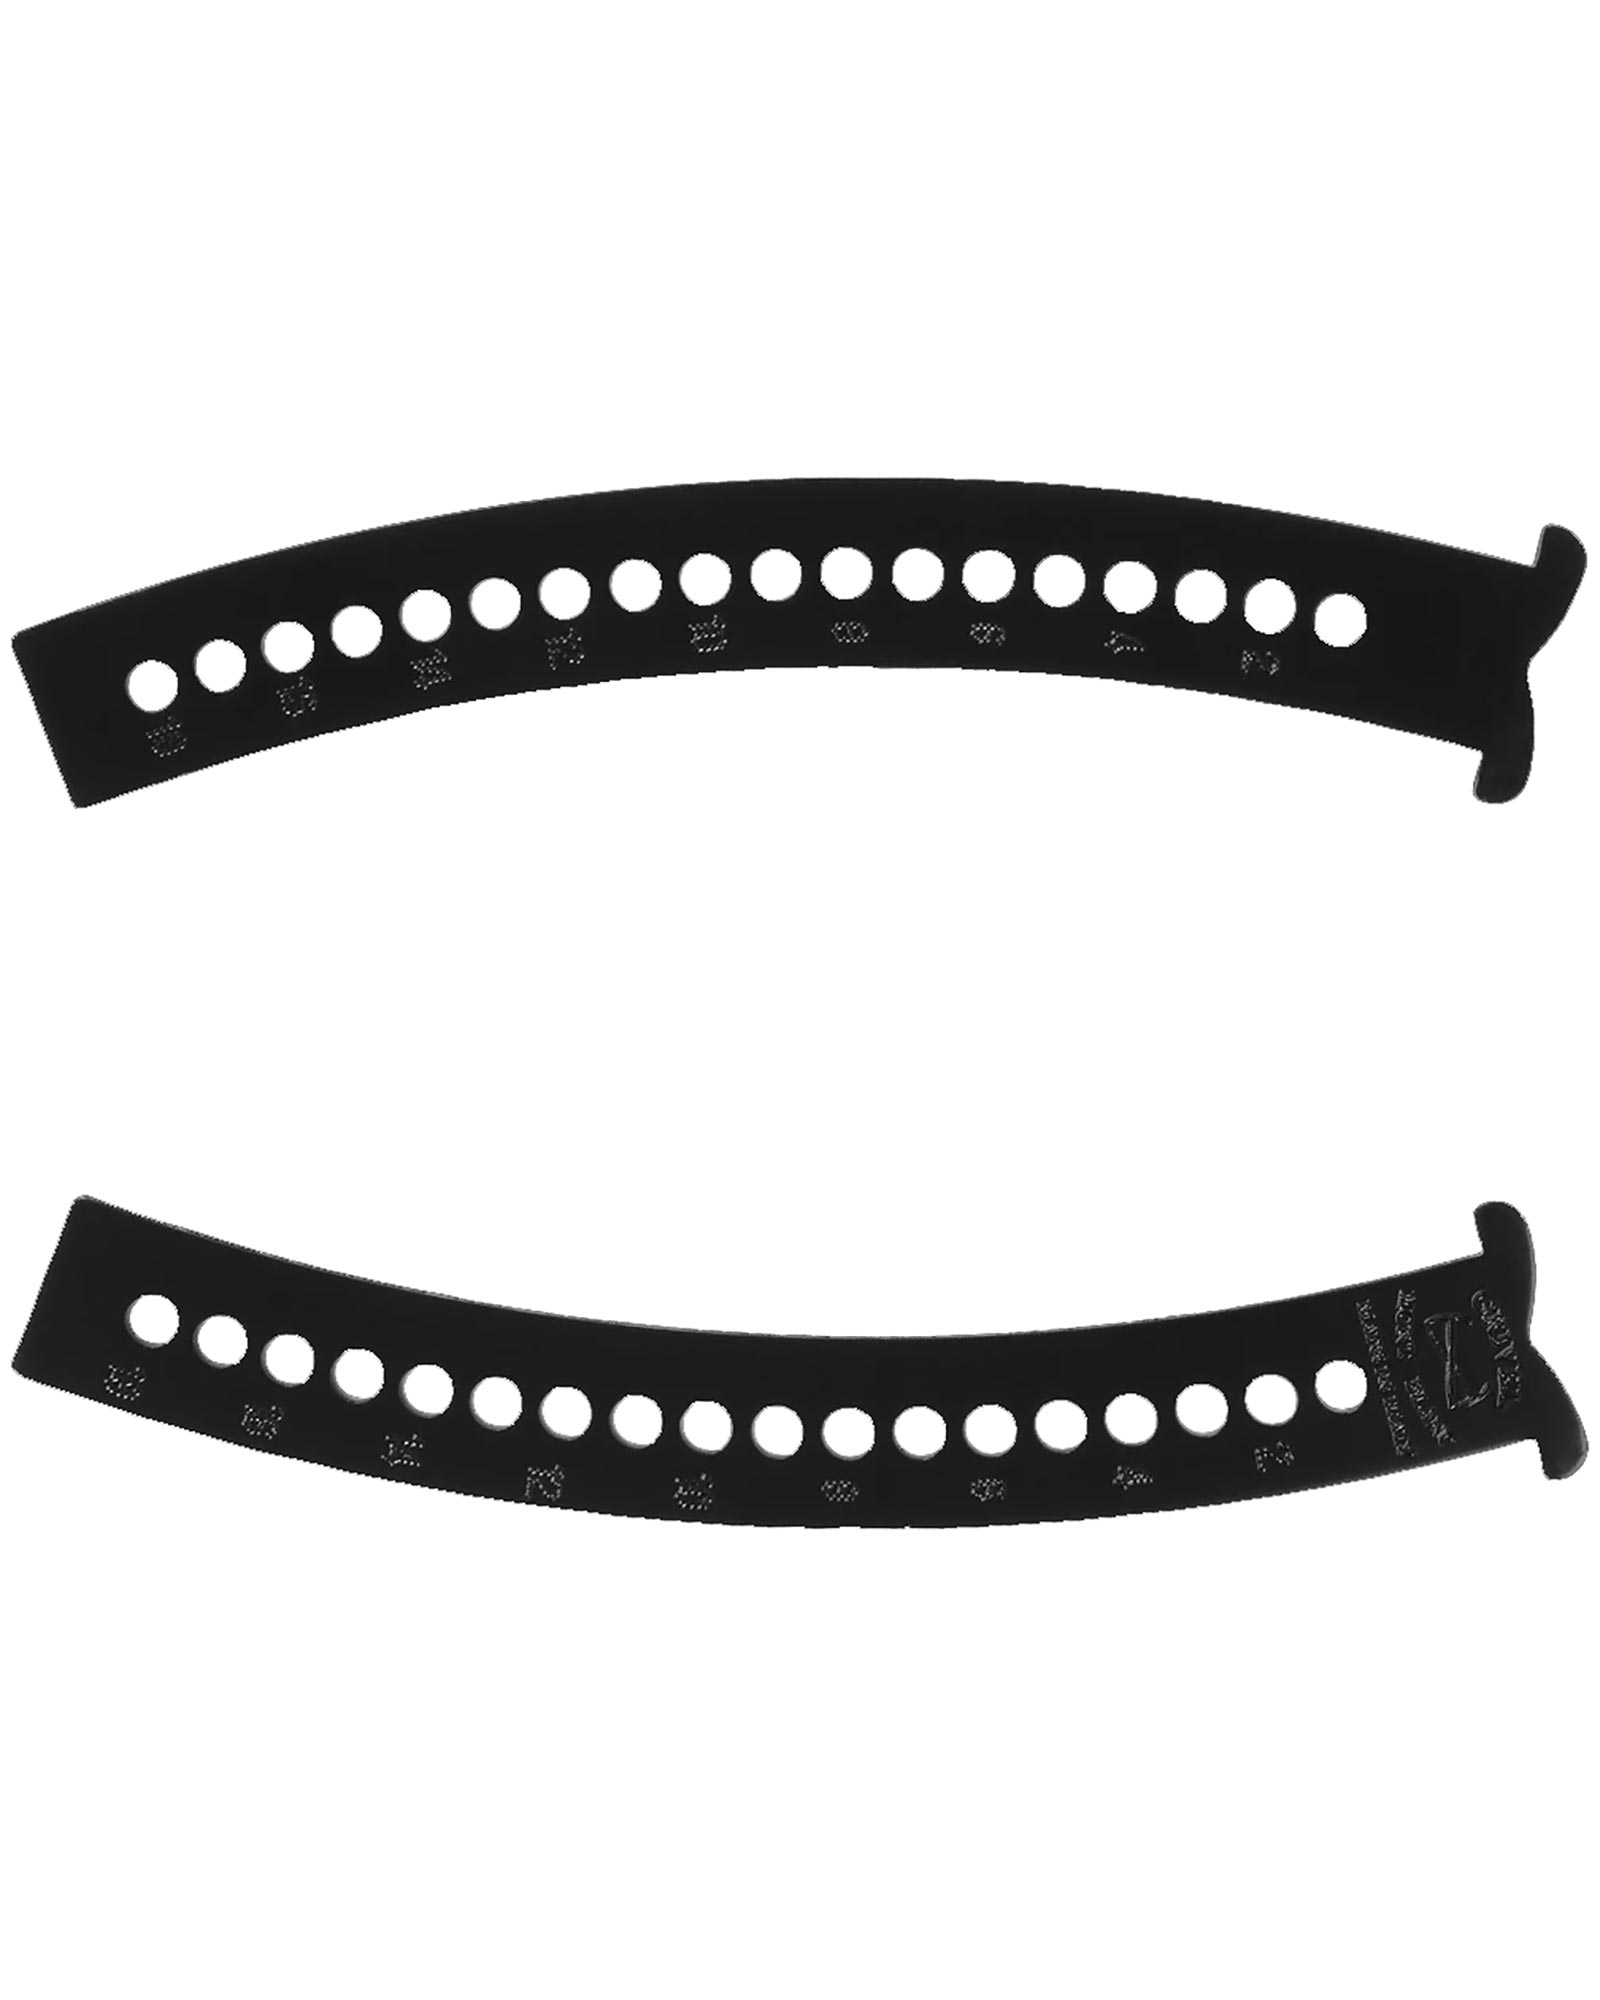 Grivel Crampon Bars - Asymmetric 0